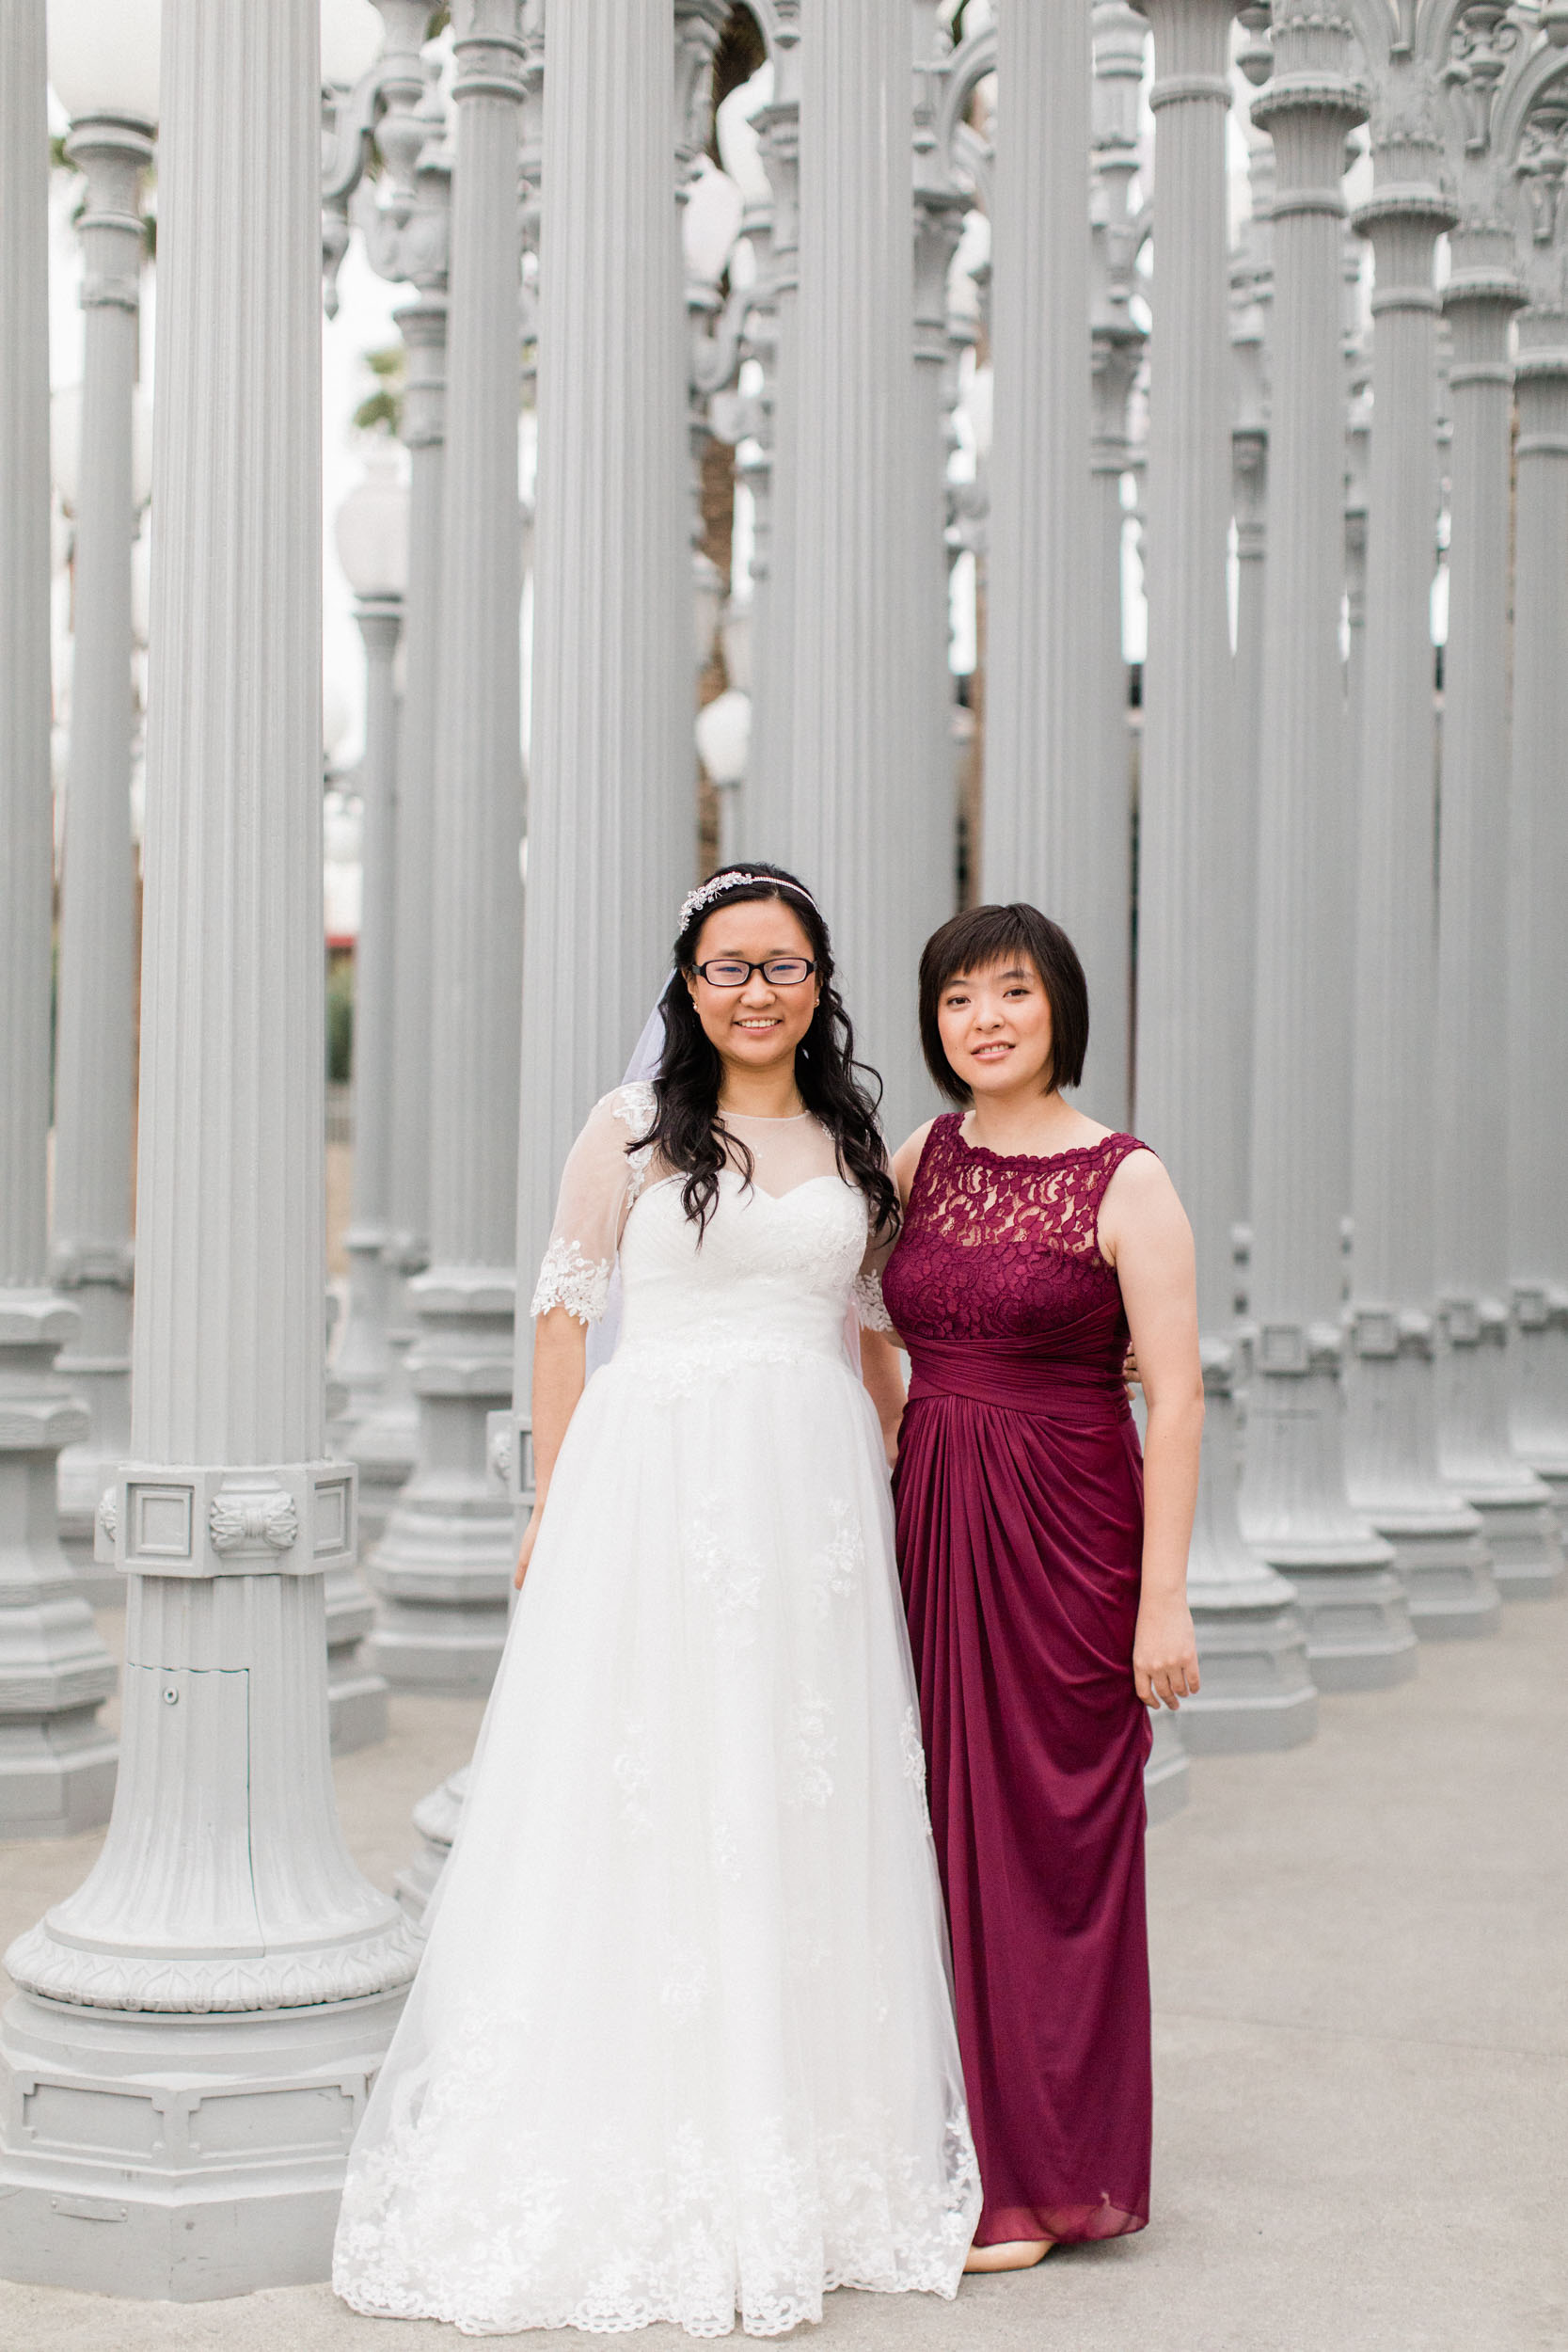 BKM-Photography-LACMA-Los-Angeles-Wedding-Photographer-0029.jpg